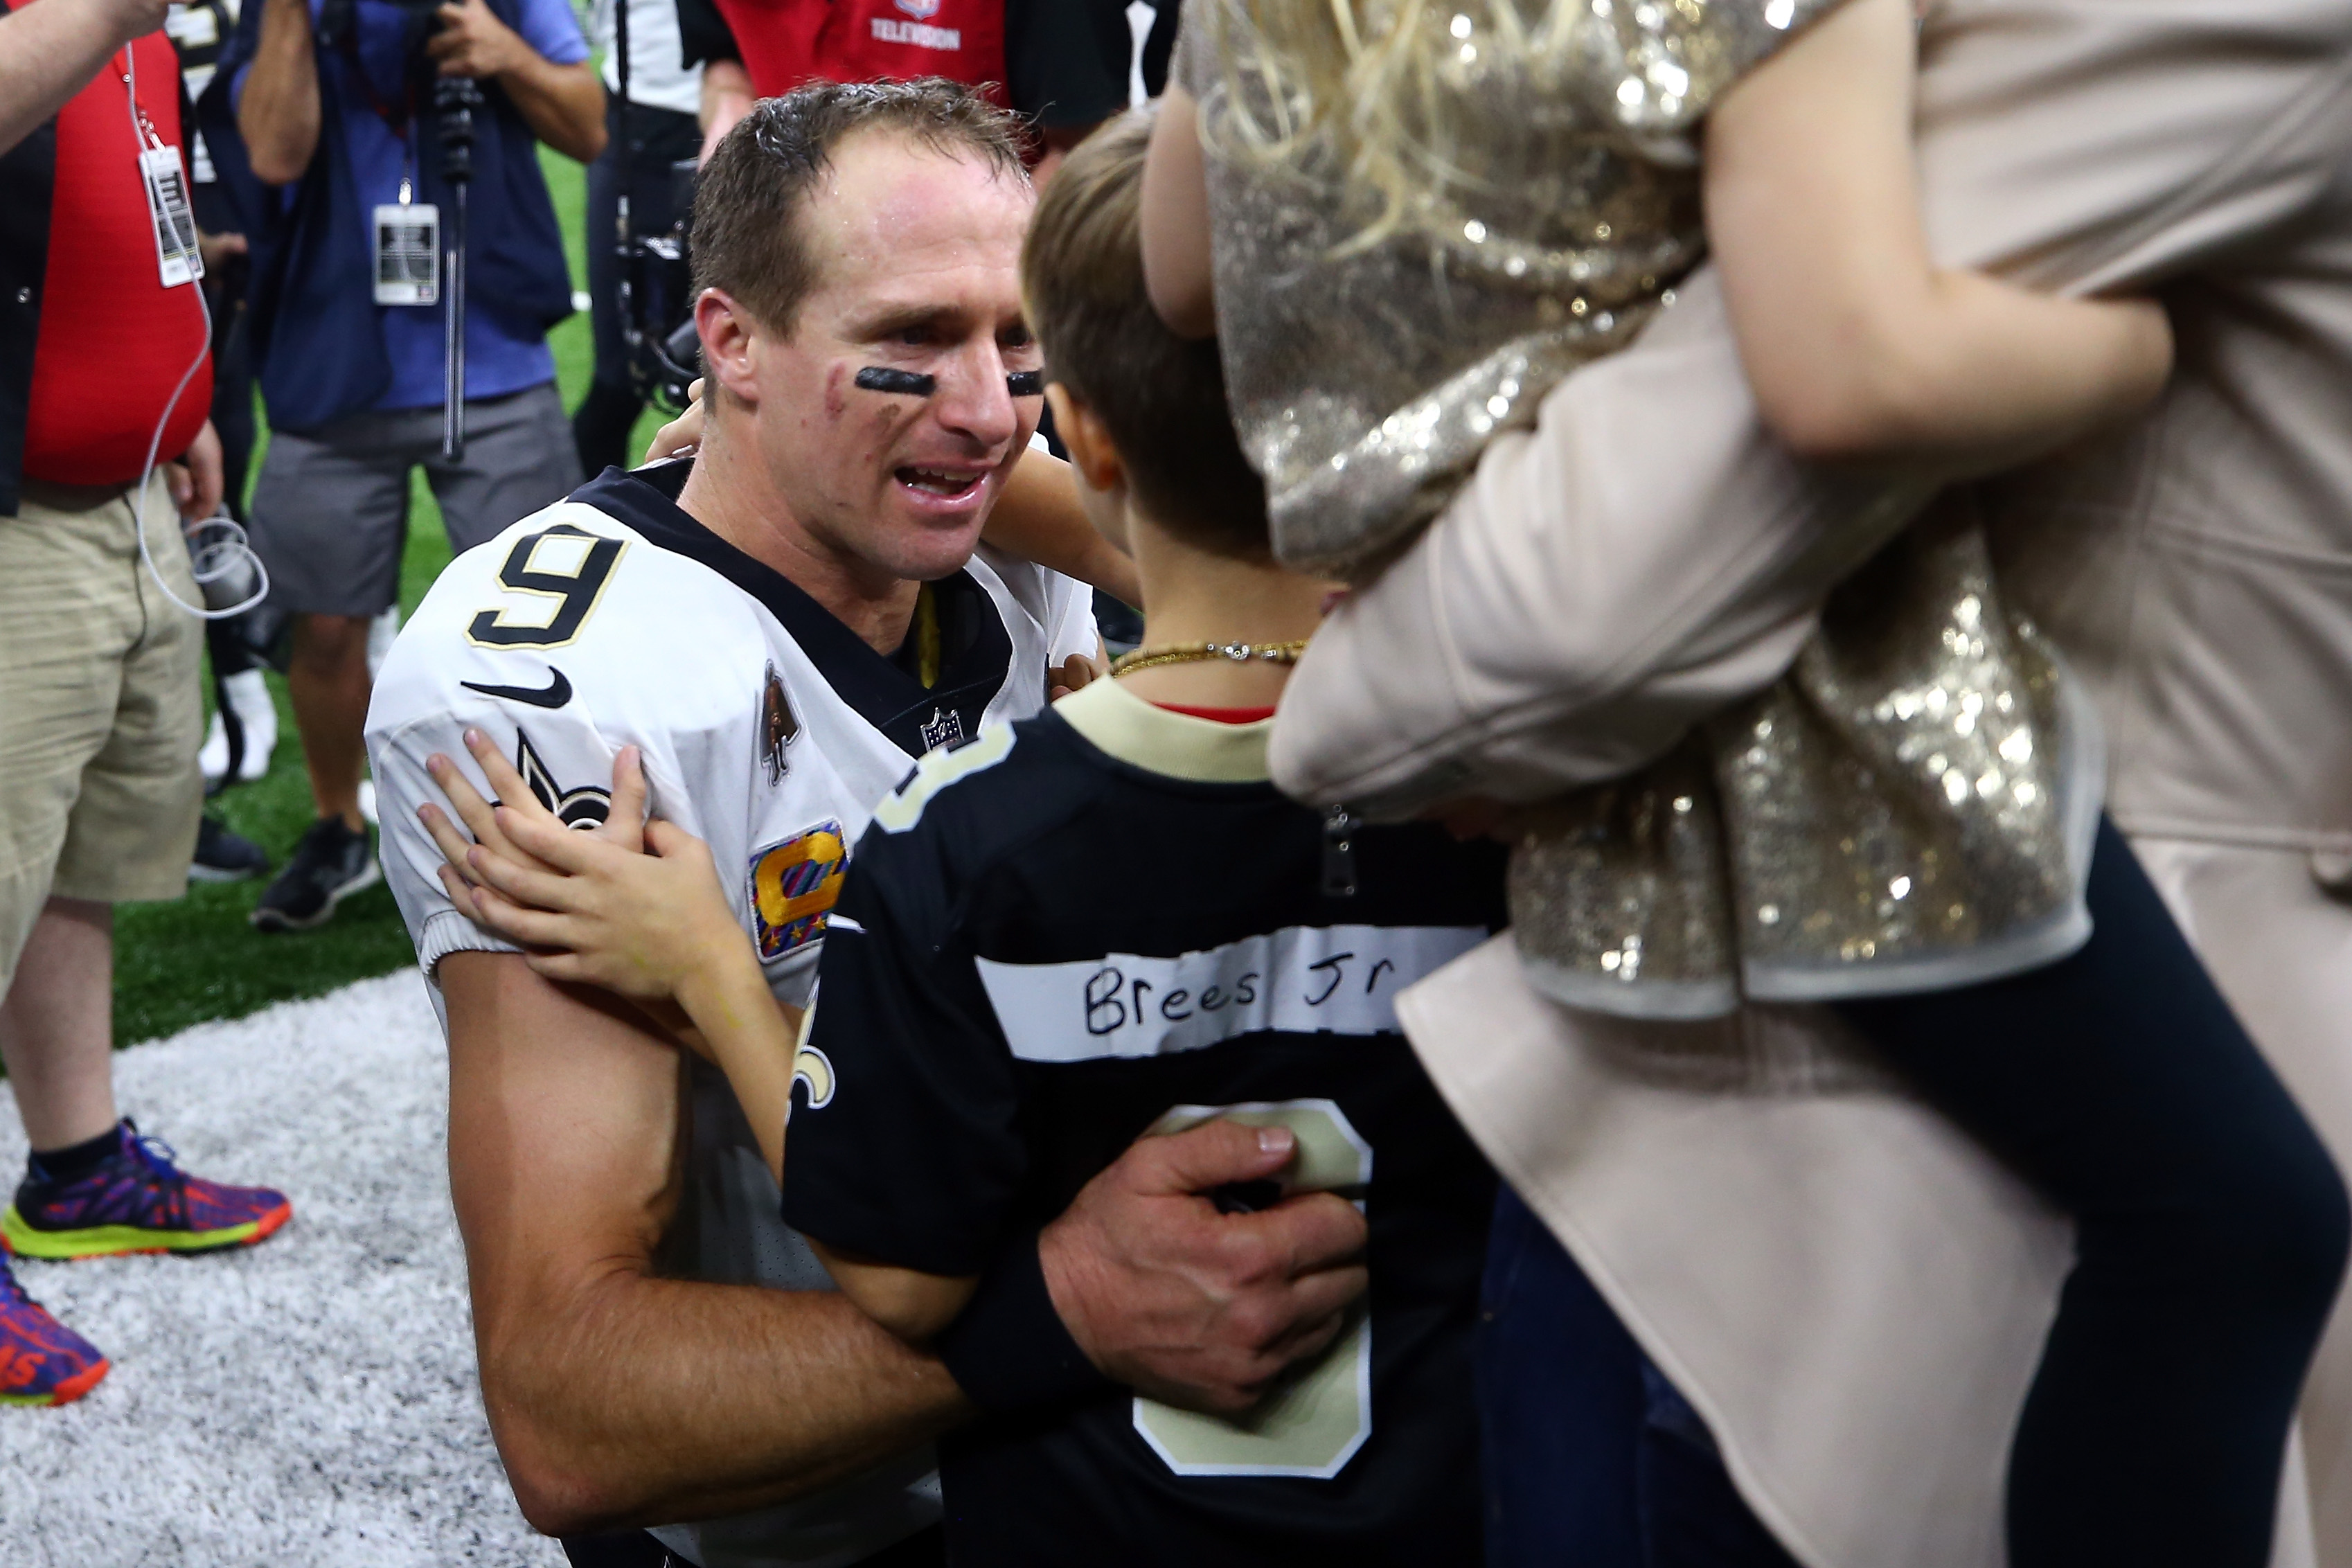 Drew Brees mic'd up after breaking passing record (video)